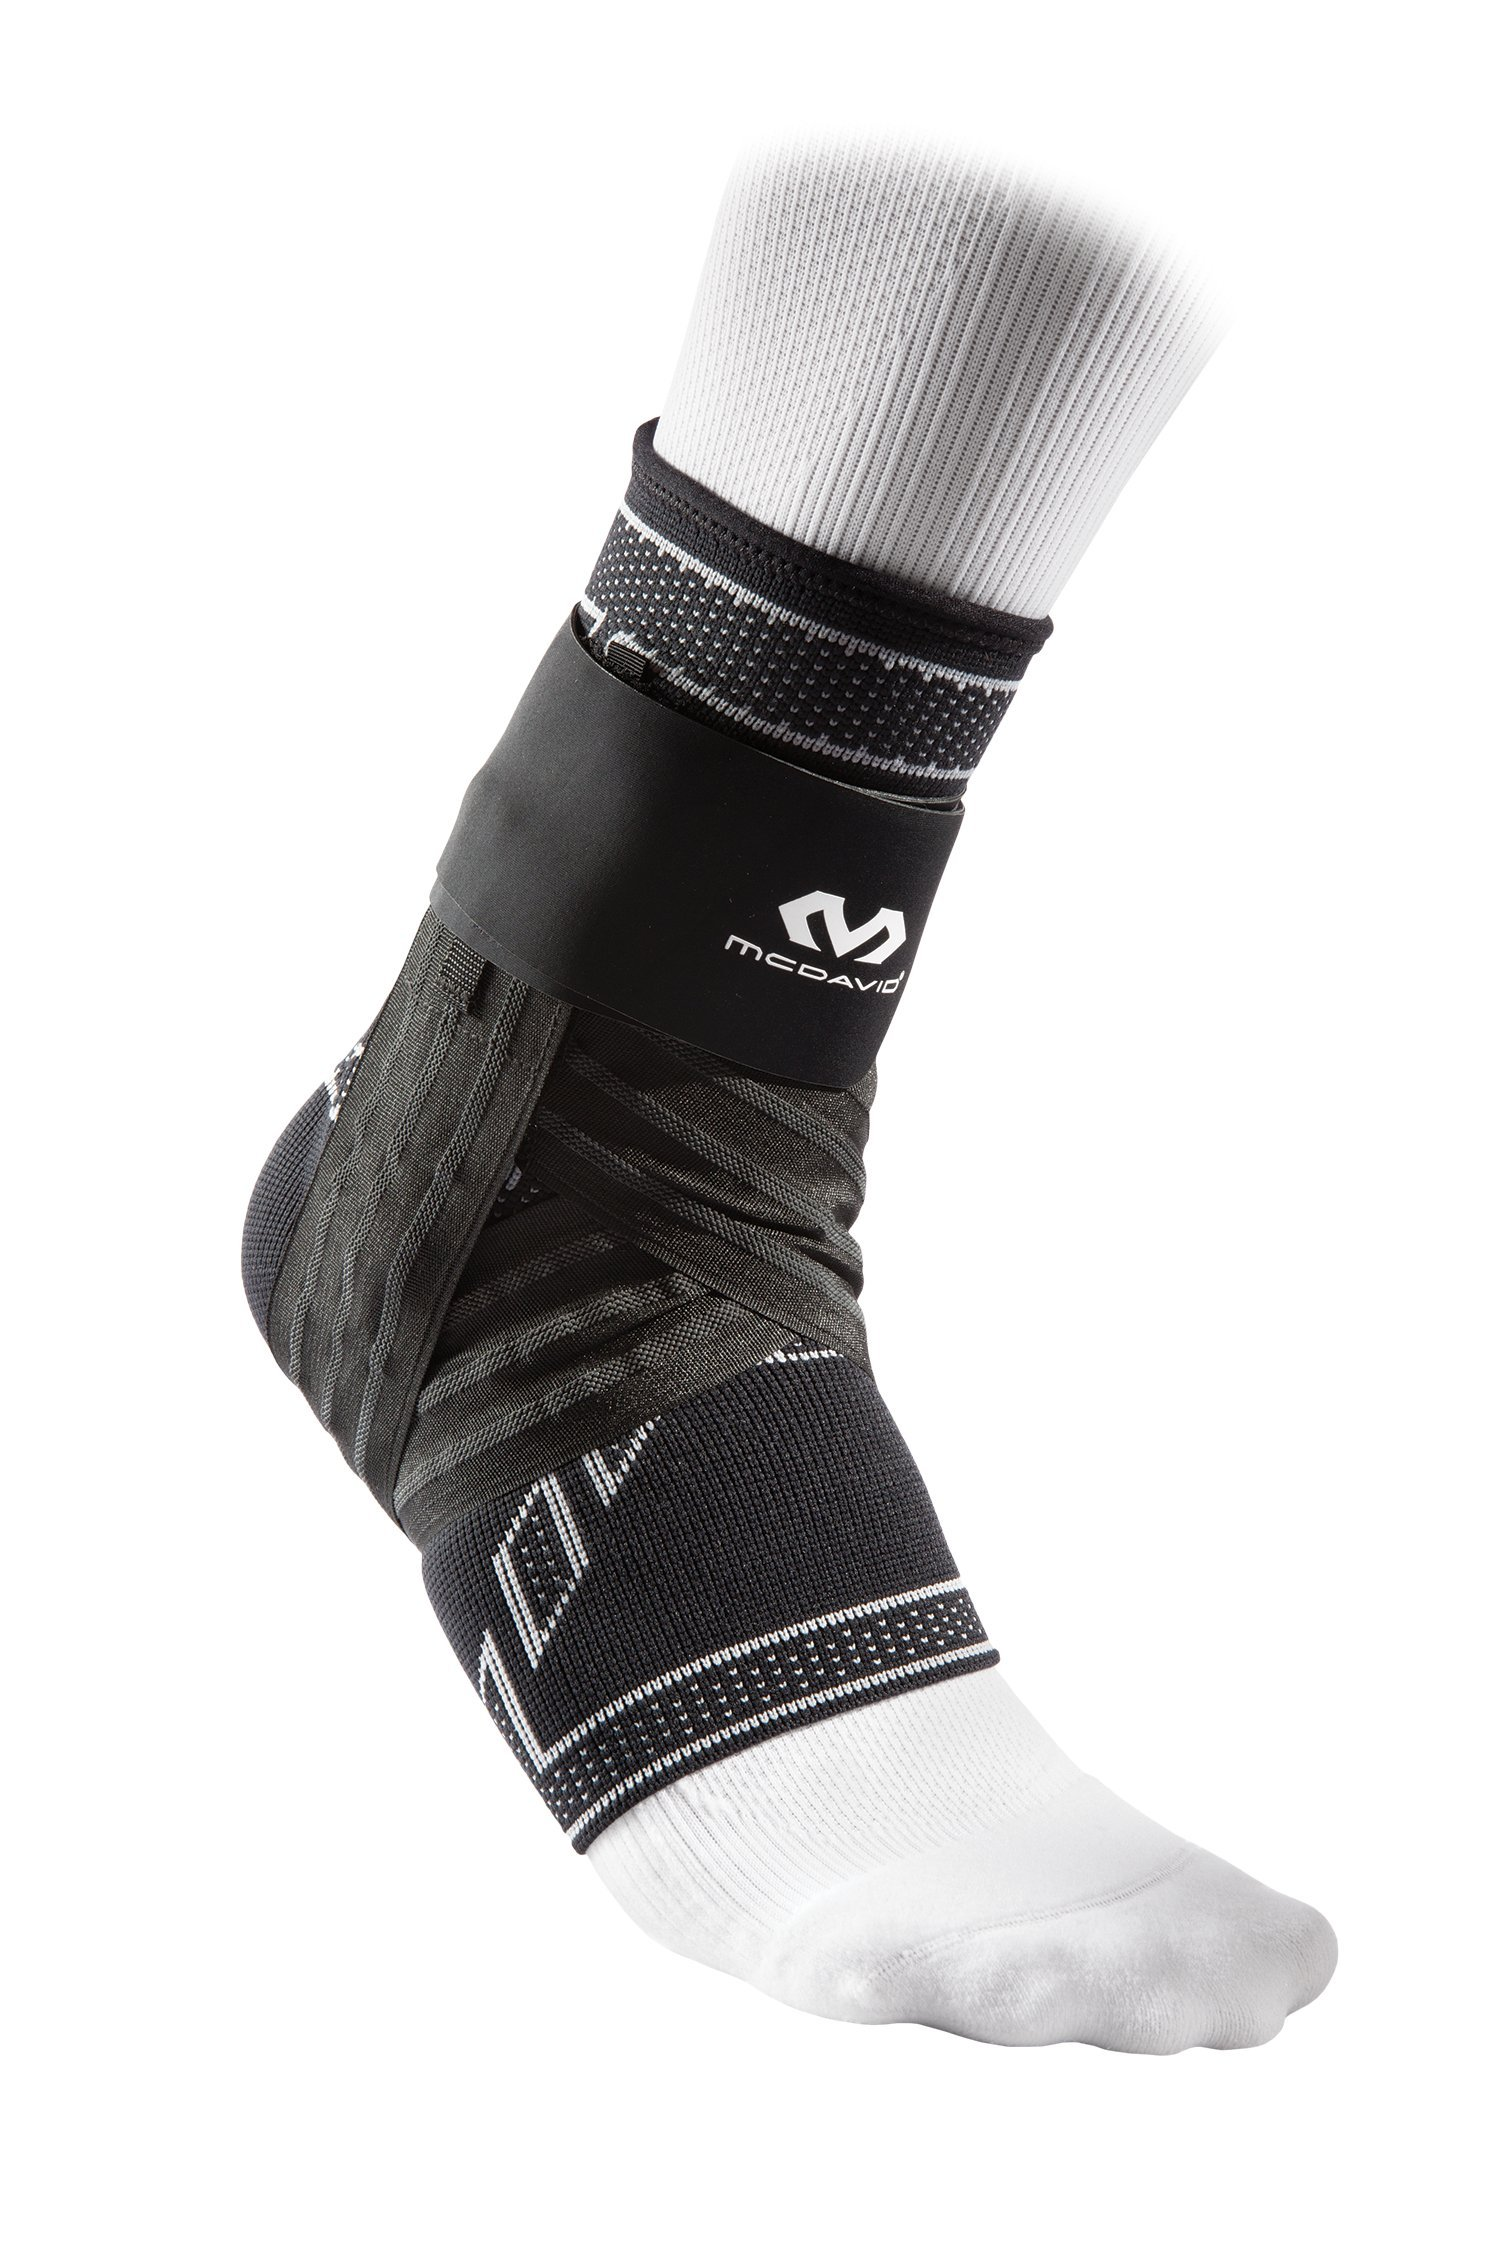 McDavid Elite Engineered Elastic Ankle Brace with Figure 6 Strap & Stays, Black, Large by McDavid (Image #1)